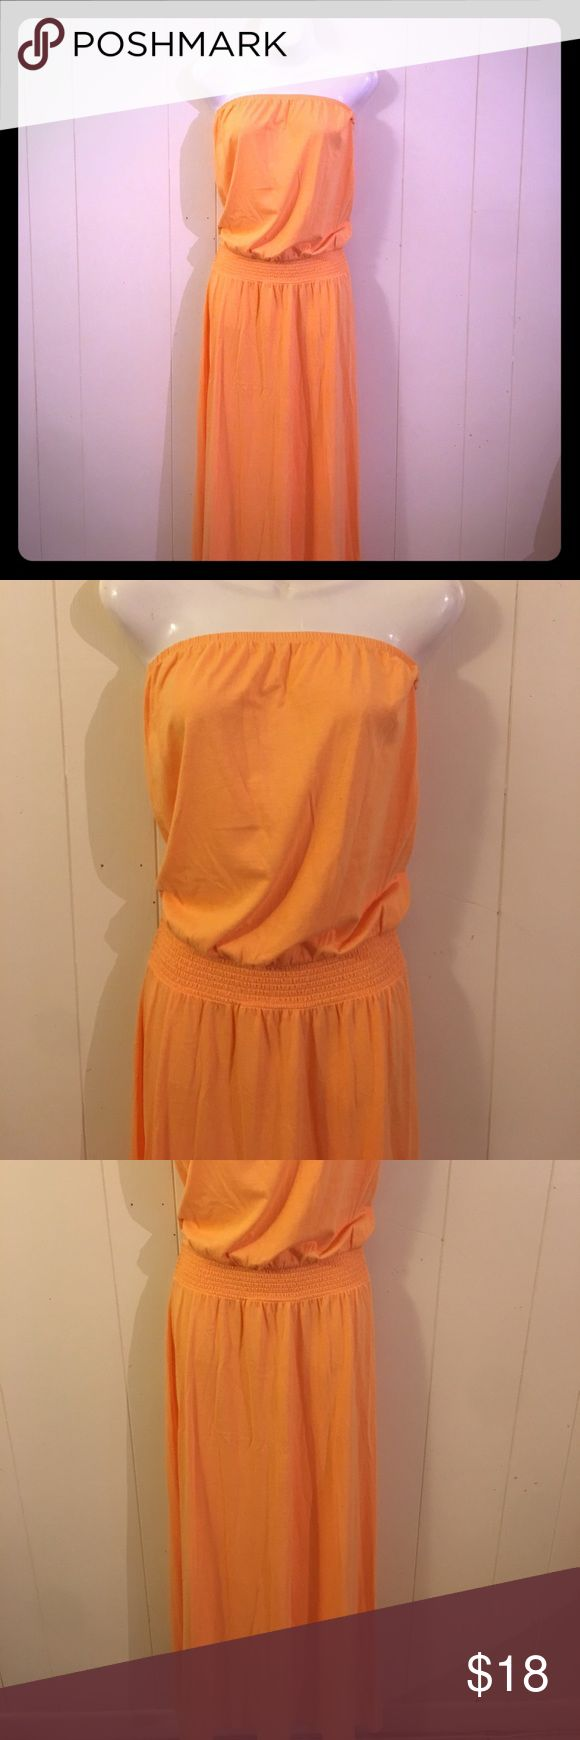 Old Navy strapless maxi dress Bright orange strapless maxi dress. Size xs. Stretchy elastic on dress waist. Gives a figure. Maxi dress. NWT. Old Navy Dresses Maxi